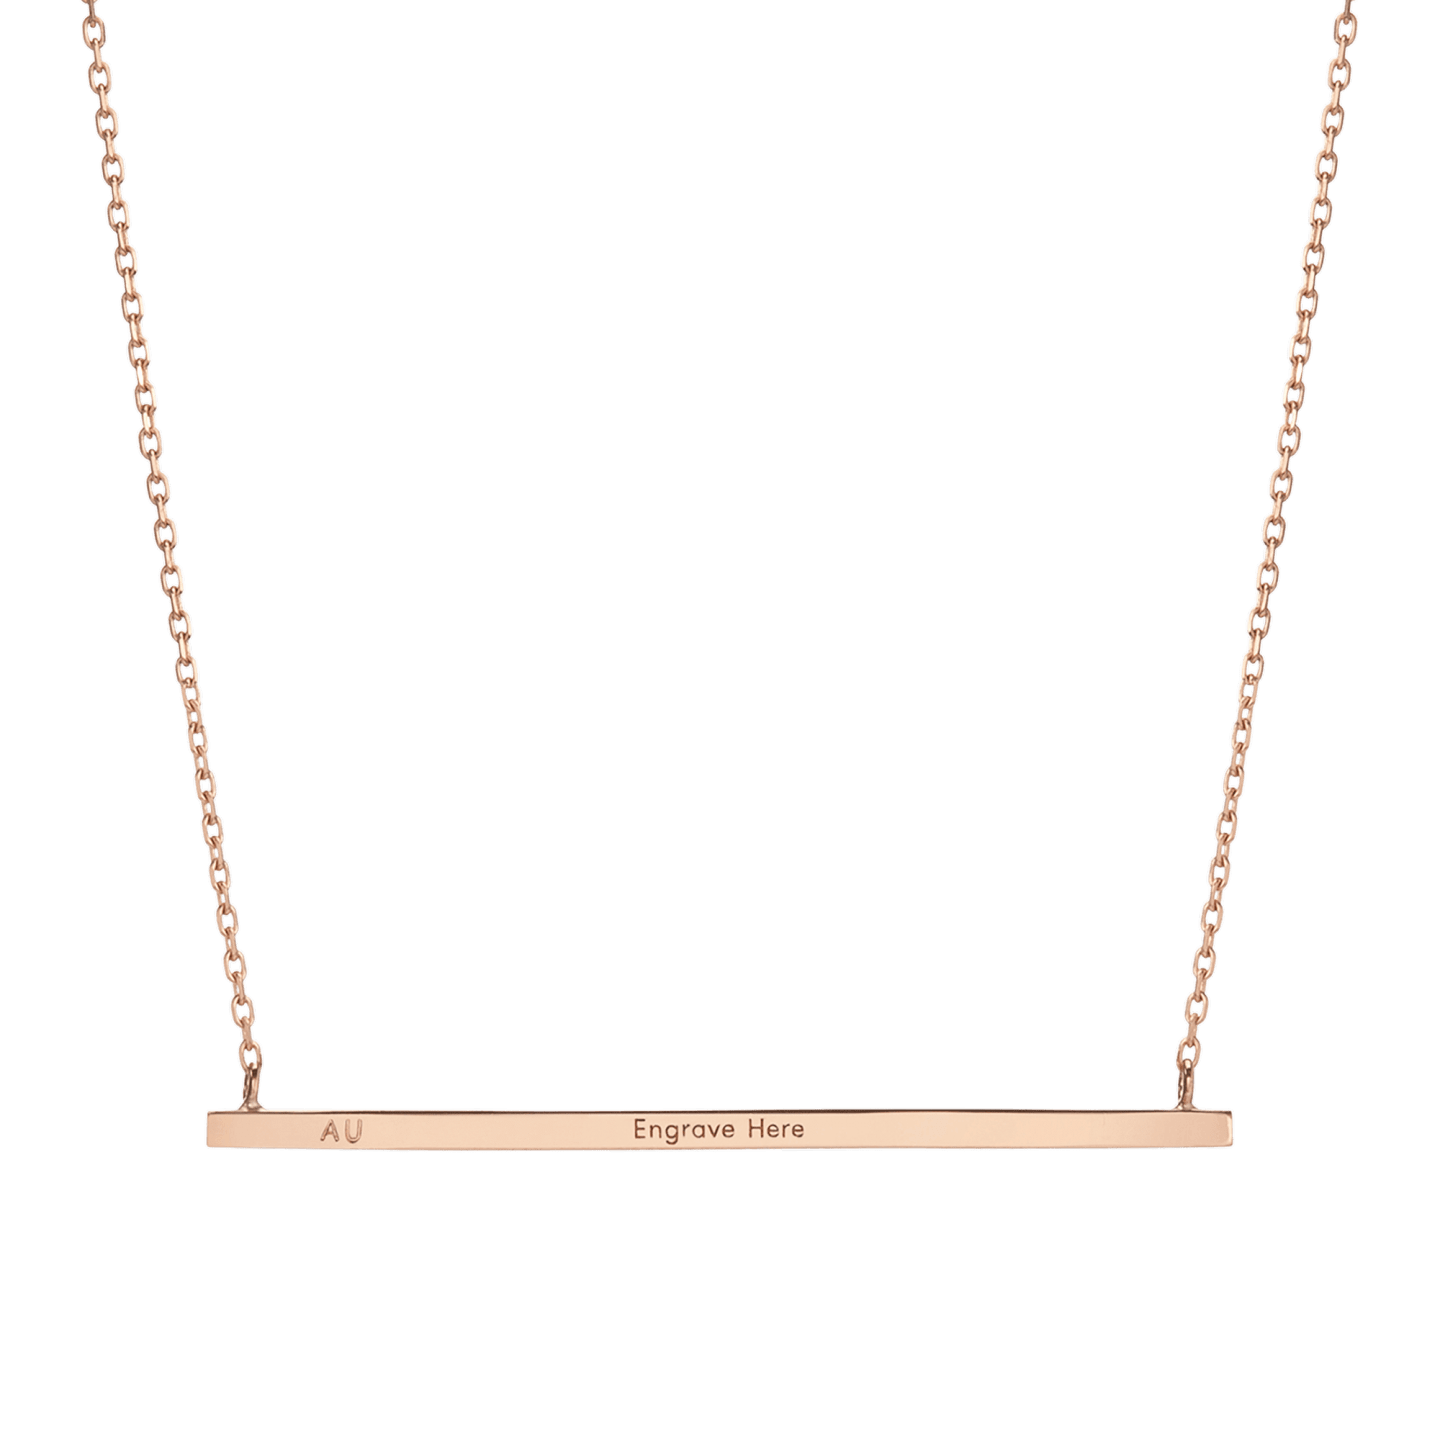 Engraved Fine Jewelry - AUrate Gold Bar Necklace